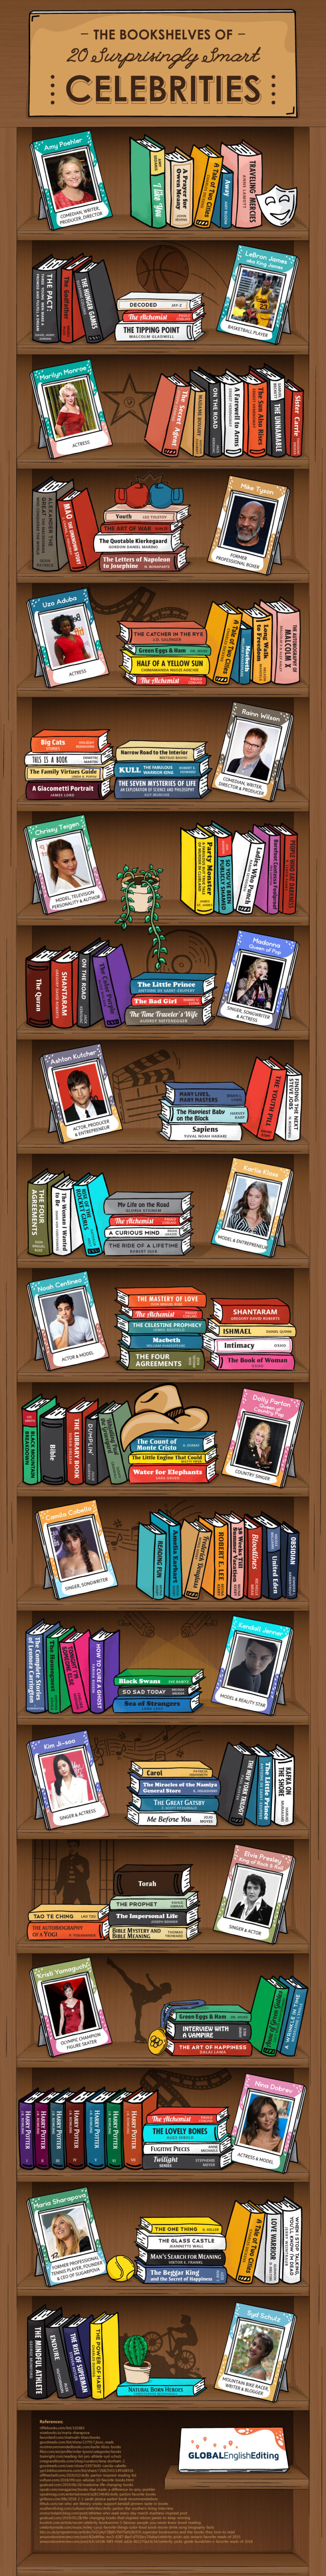 How Reading Helps Celebrities Daily Lives - Princh Library Blog